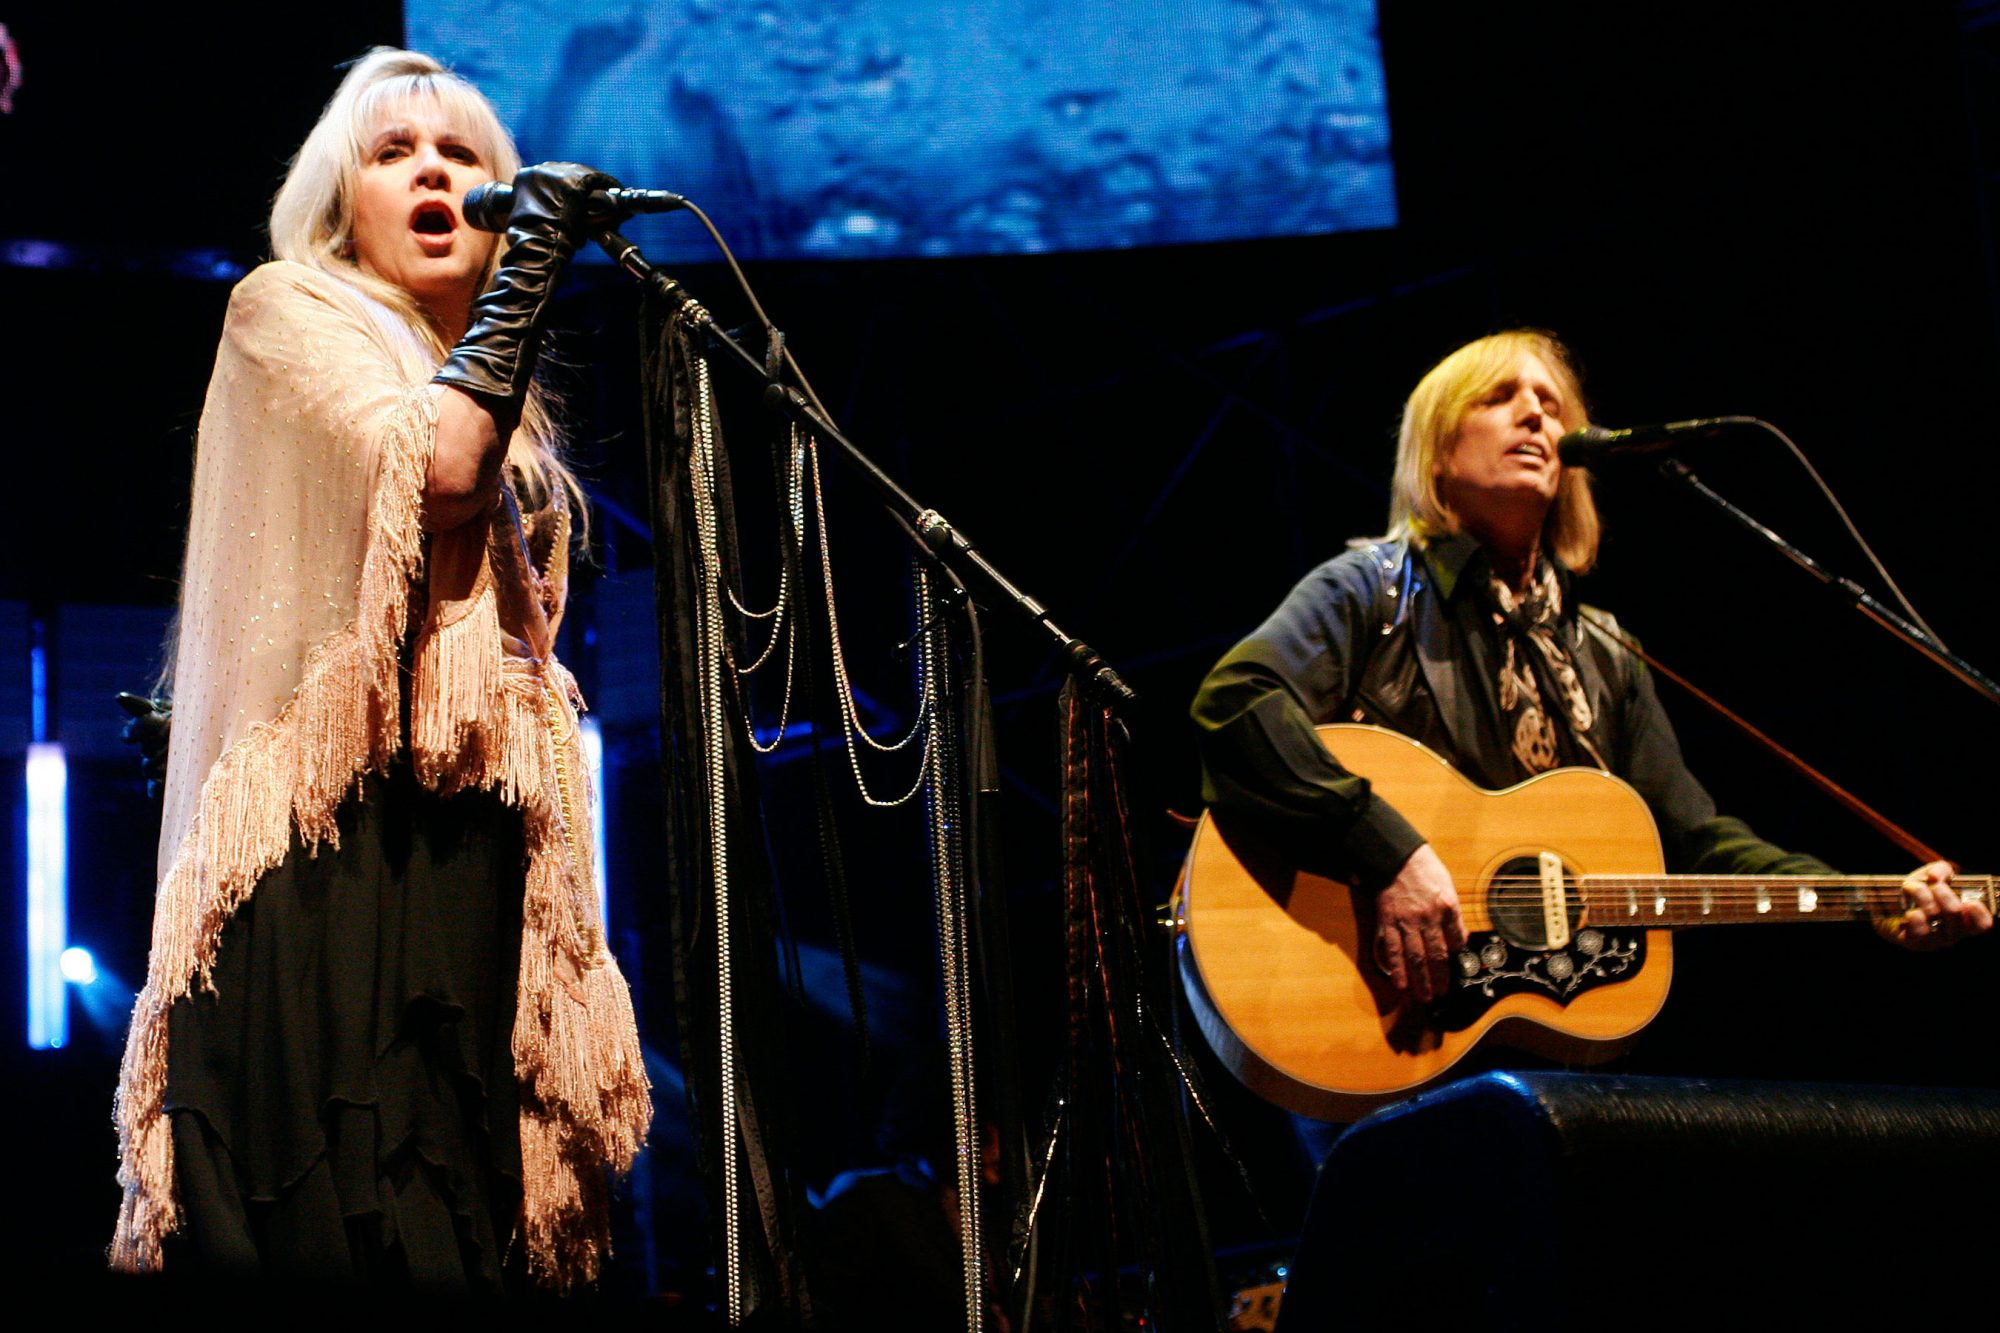 Tom Petty and The Heartbreakers Perform at The Greek Theater October 27, 2006